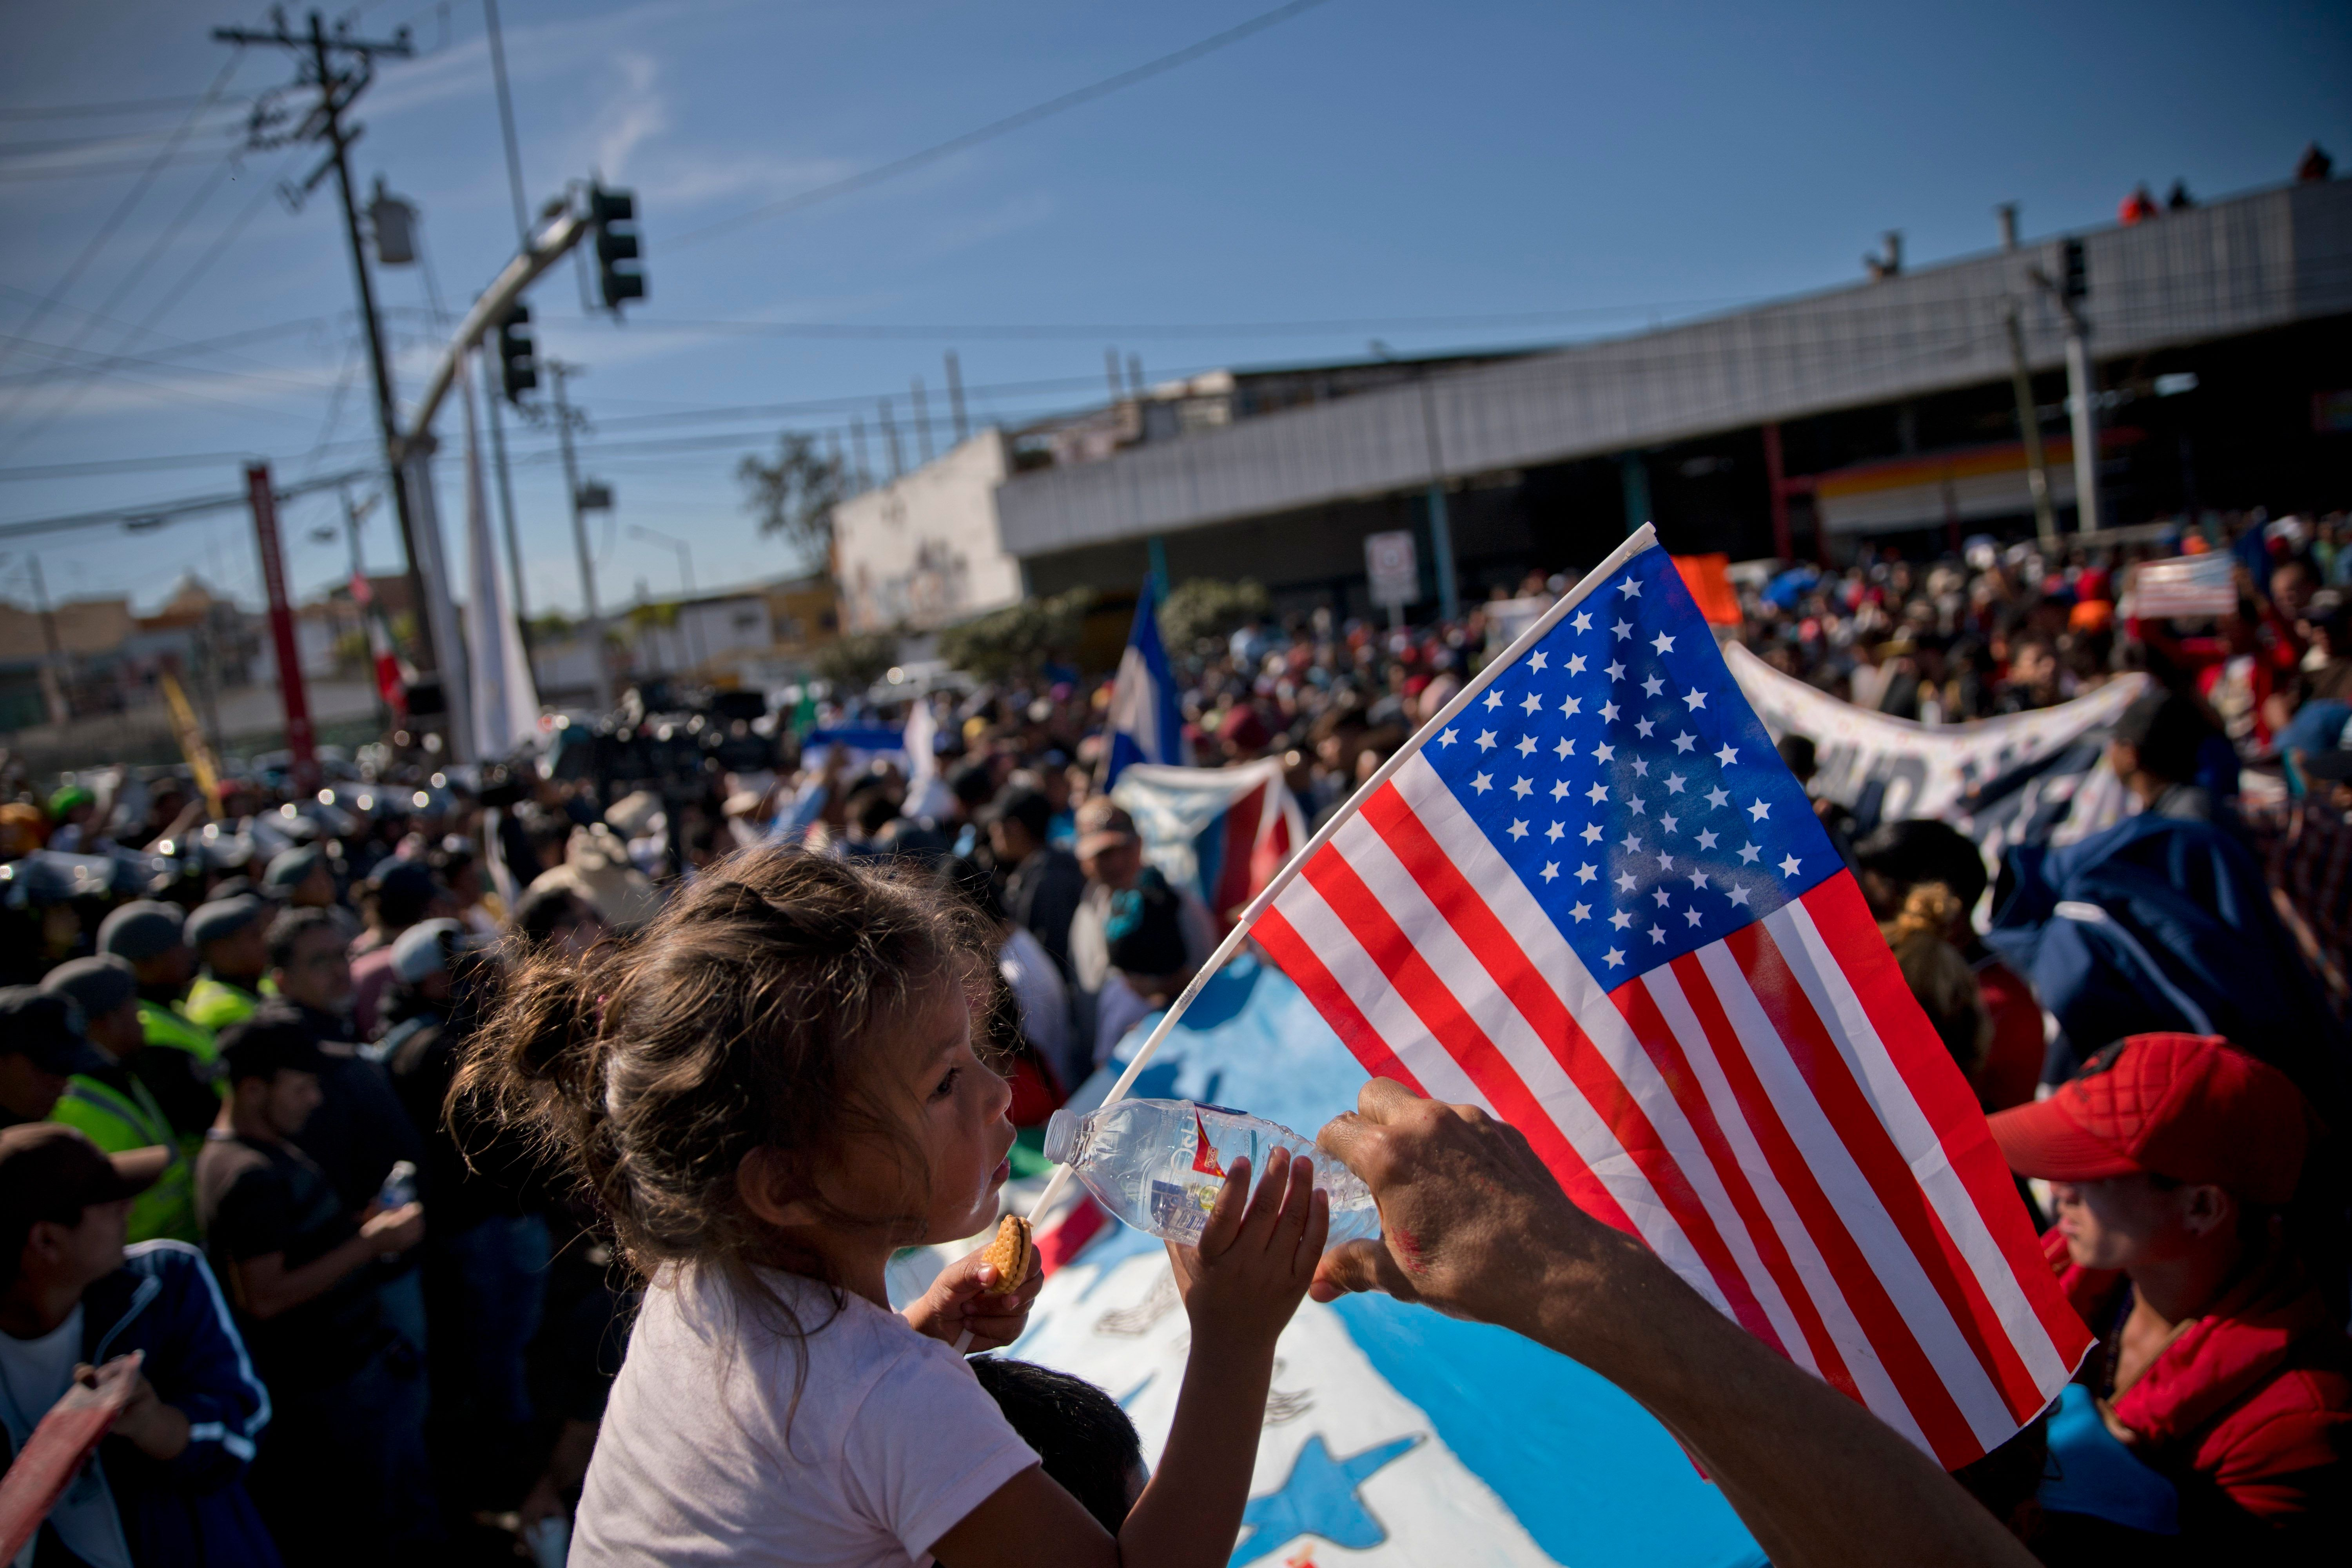 Migrants in the caravan at the U.S.-Mexico border in Tijuana were met with violence on Sunday.